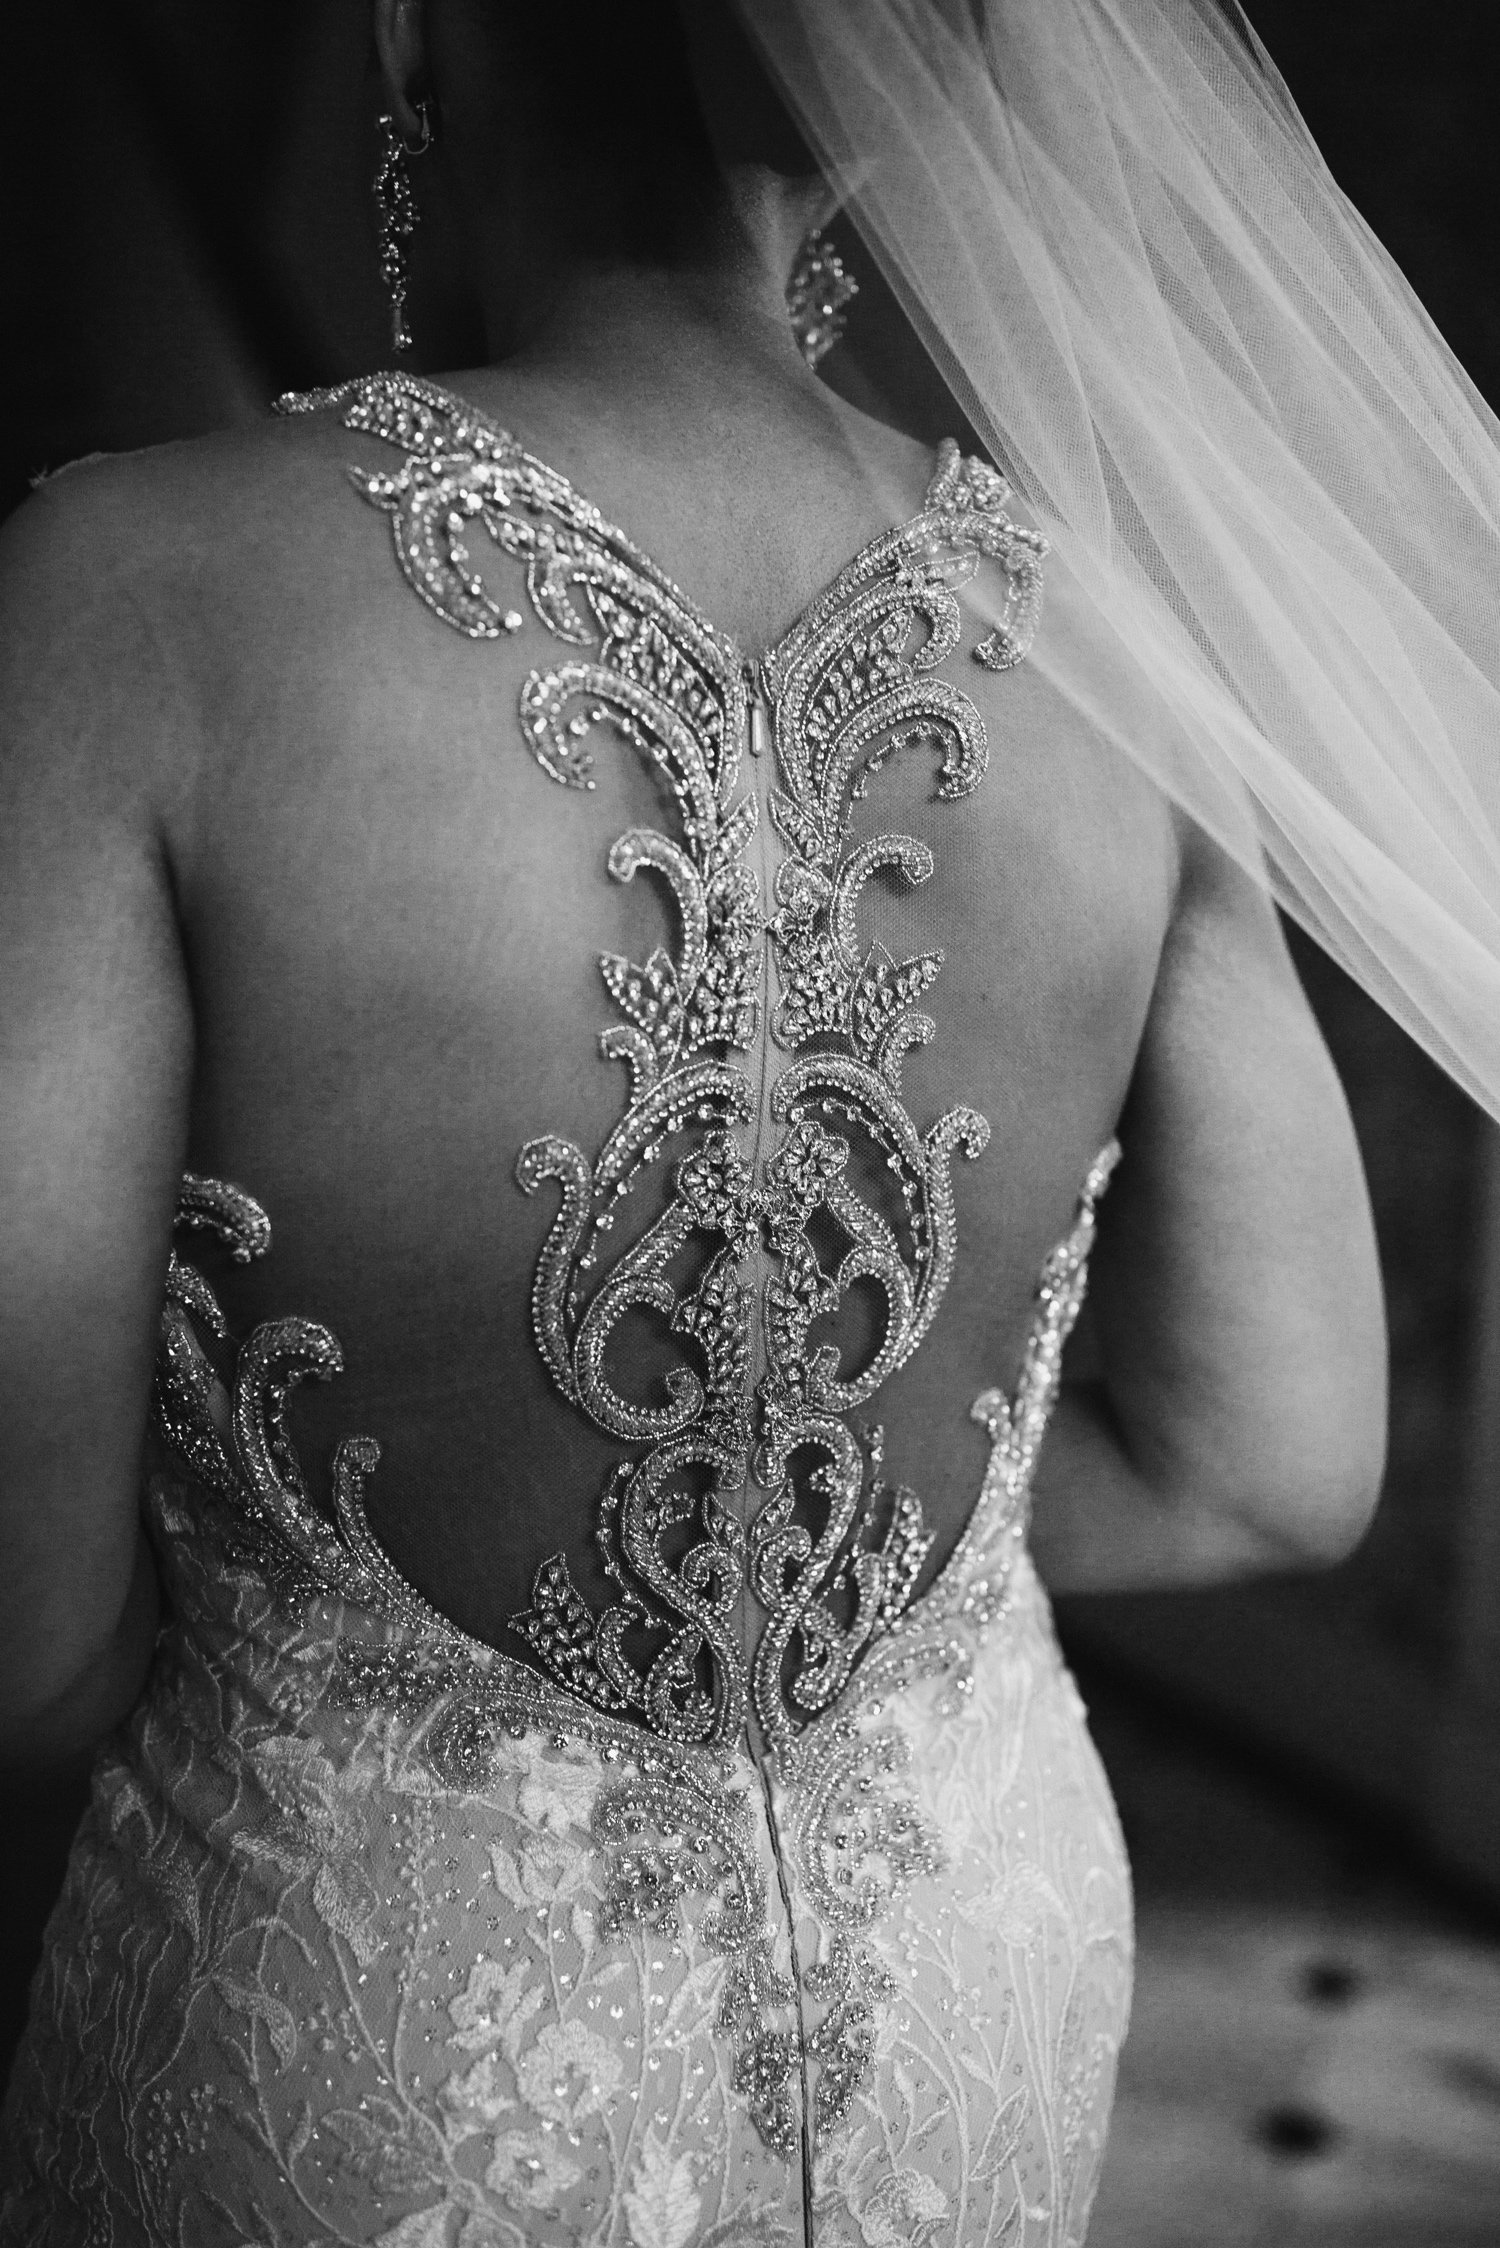 intricate details of the brides dress with jewels on the backside